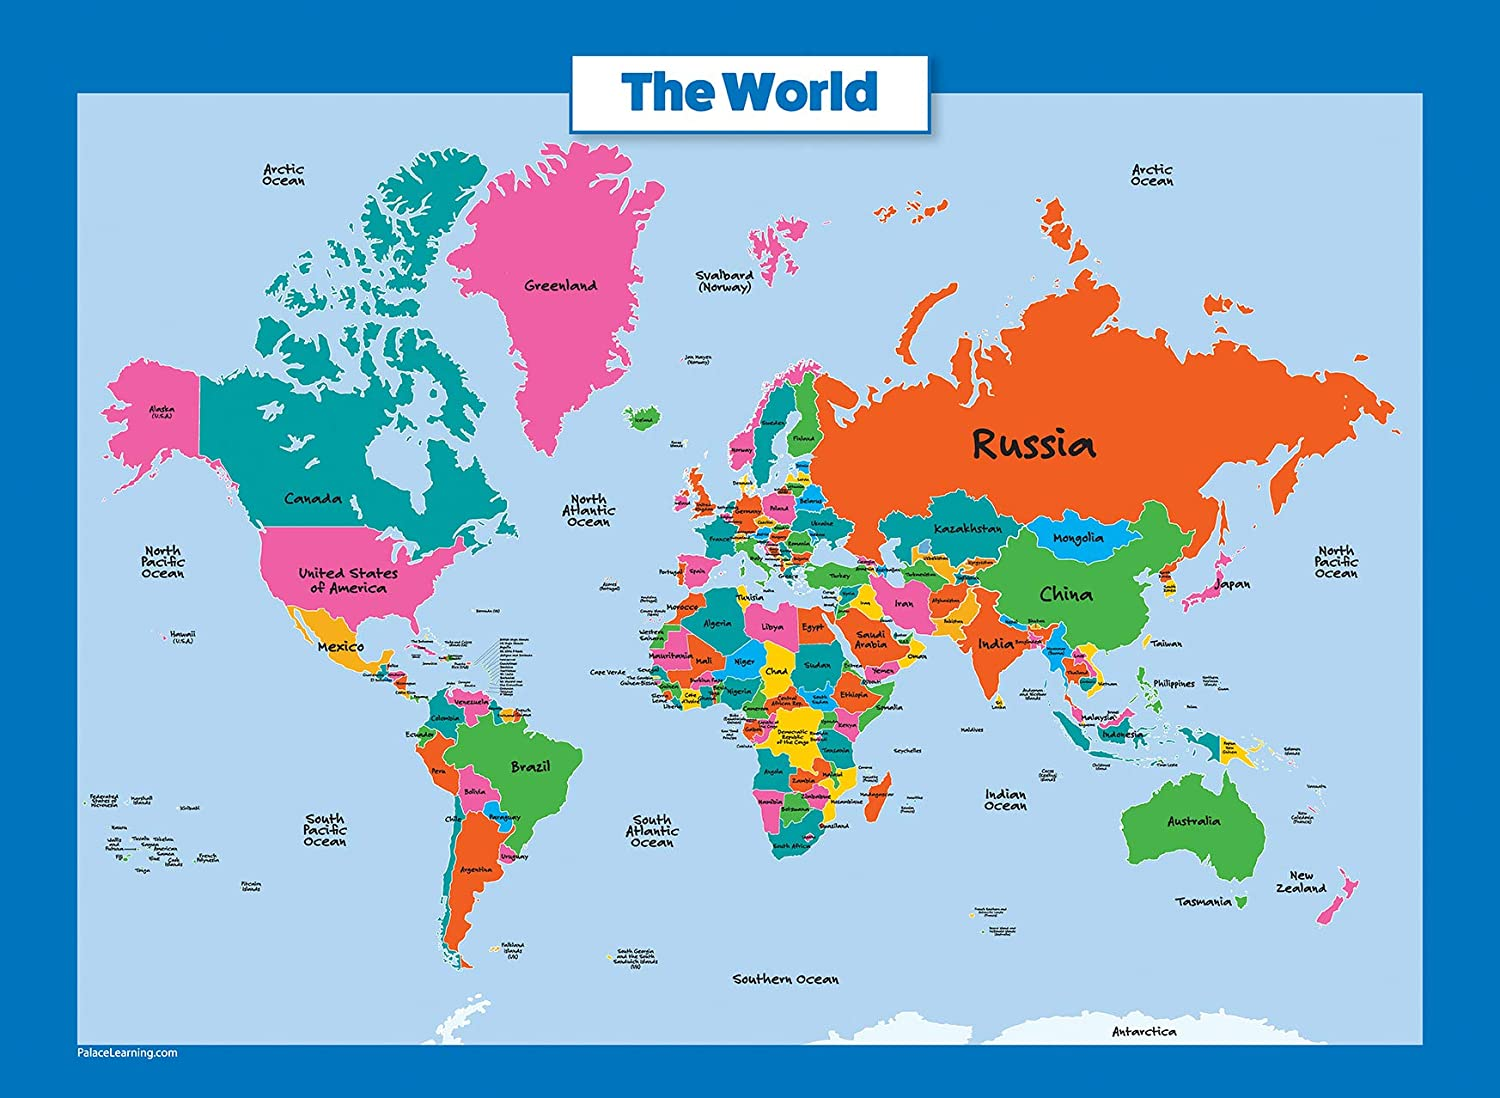 Simple Map Of The World Amazon.com: Palace Curriculum World Map and USA Map for Kids   2